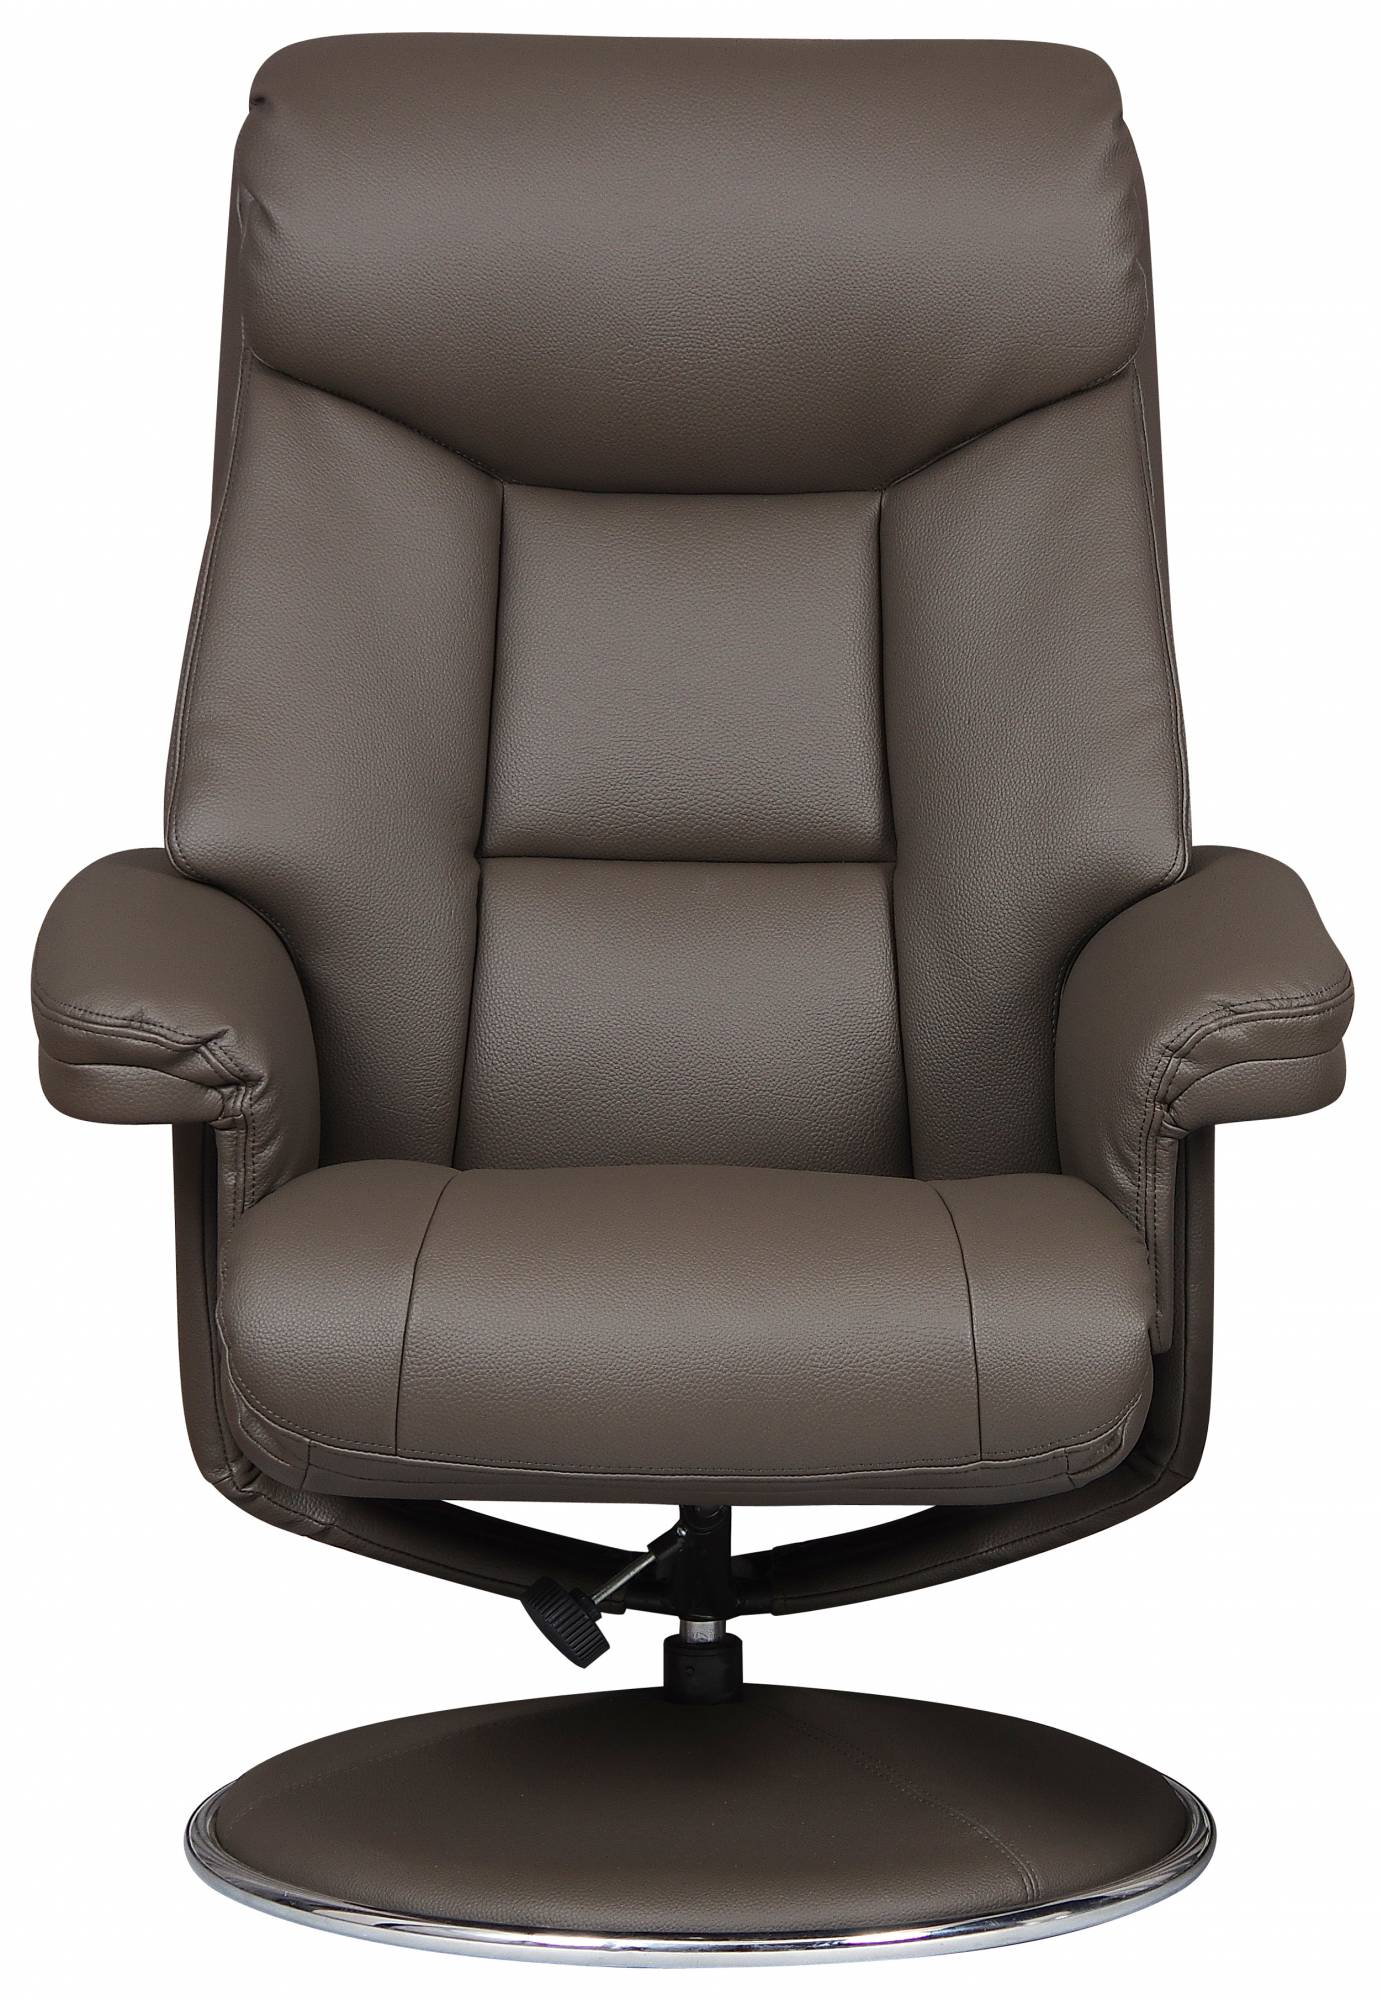 Toulouse – Swivel Recliner Chair & Footstool Charcoal Faux Leather Intended For Charcoal Swivel Chairs (Image 20 of 20)